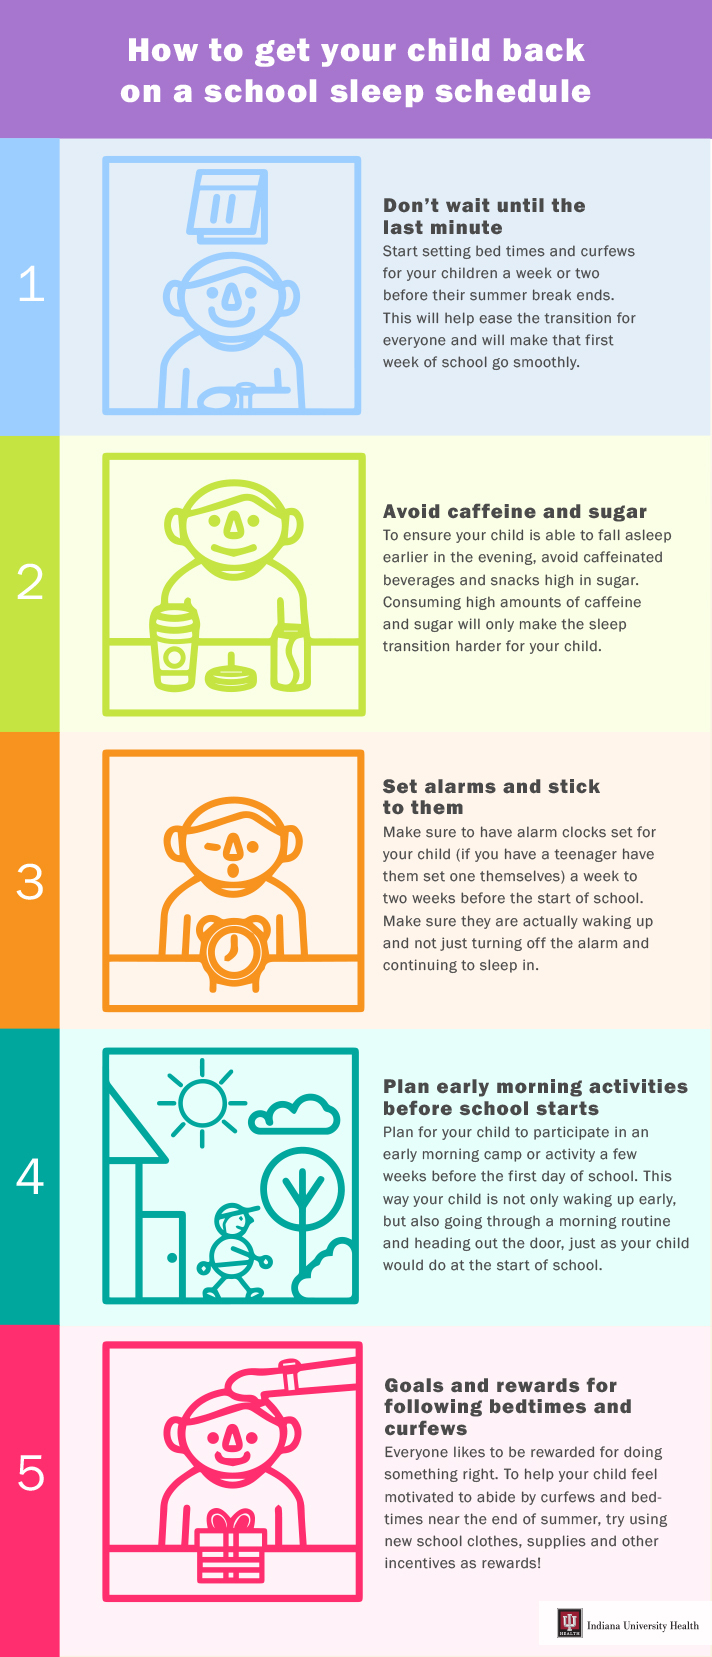 1. Don't wait until last minutes, 2. Avoid caffeine and sugar, 3. Set alarms and stick to them, 4. Plan early morning activities before school starts, 5. Goal and rewards for following bedtimes